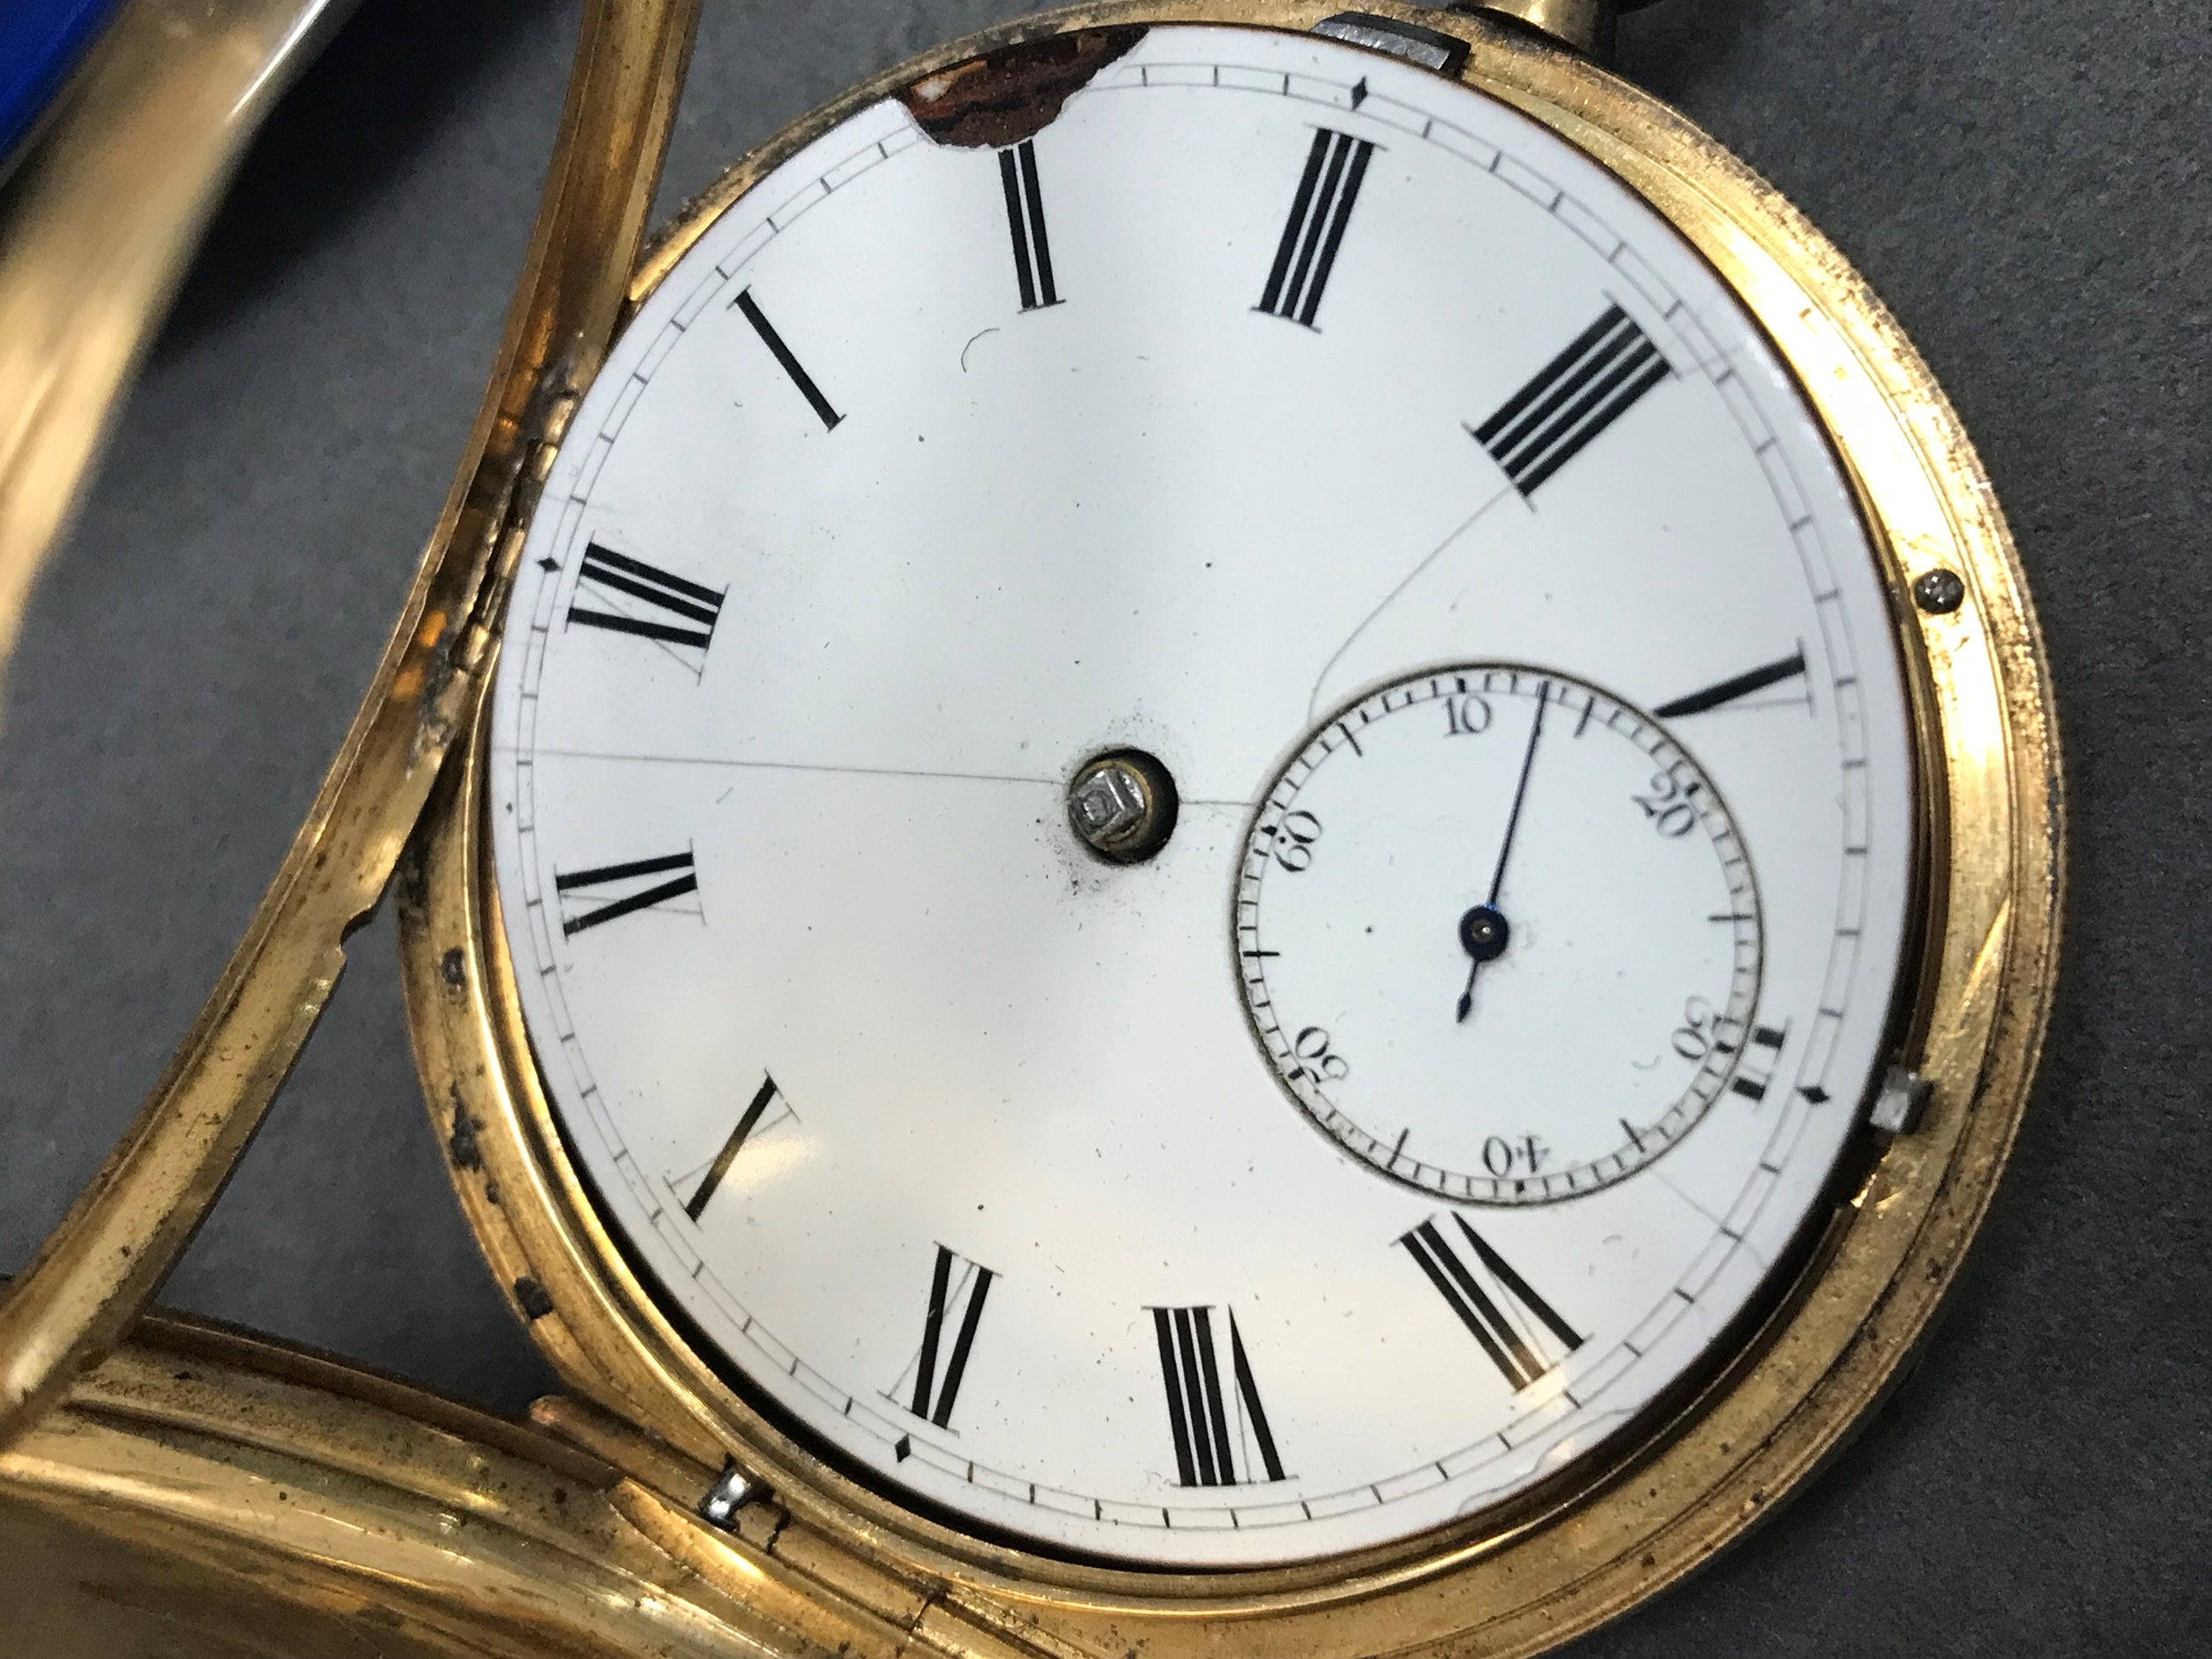 EIGHTEEN CARAT GOLD FULL HUNTER POCKET WATCH, the round white dial with Roman hour markers, - Image 6 of 6